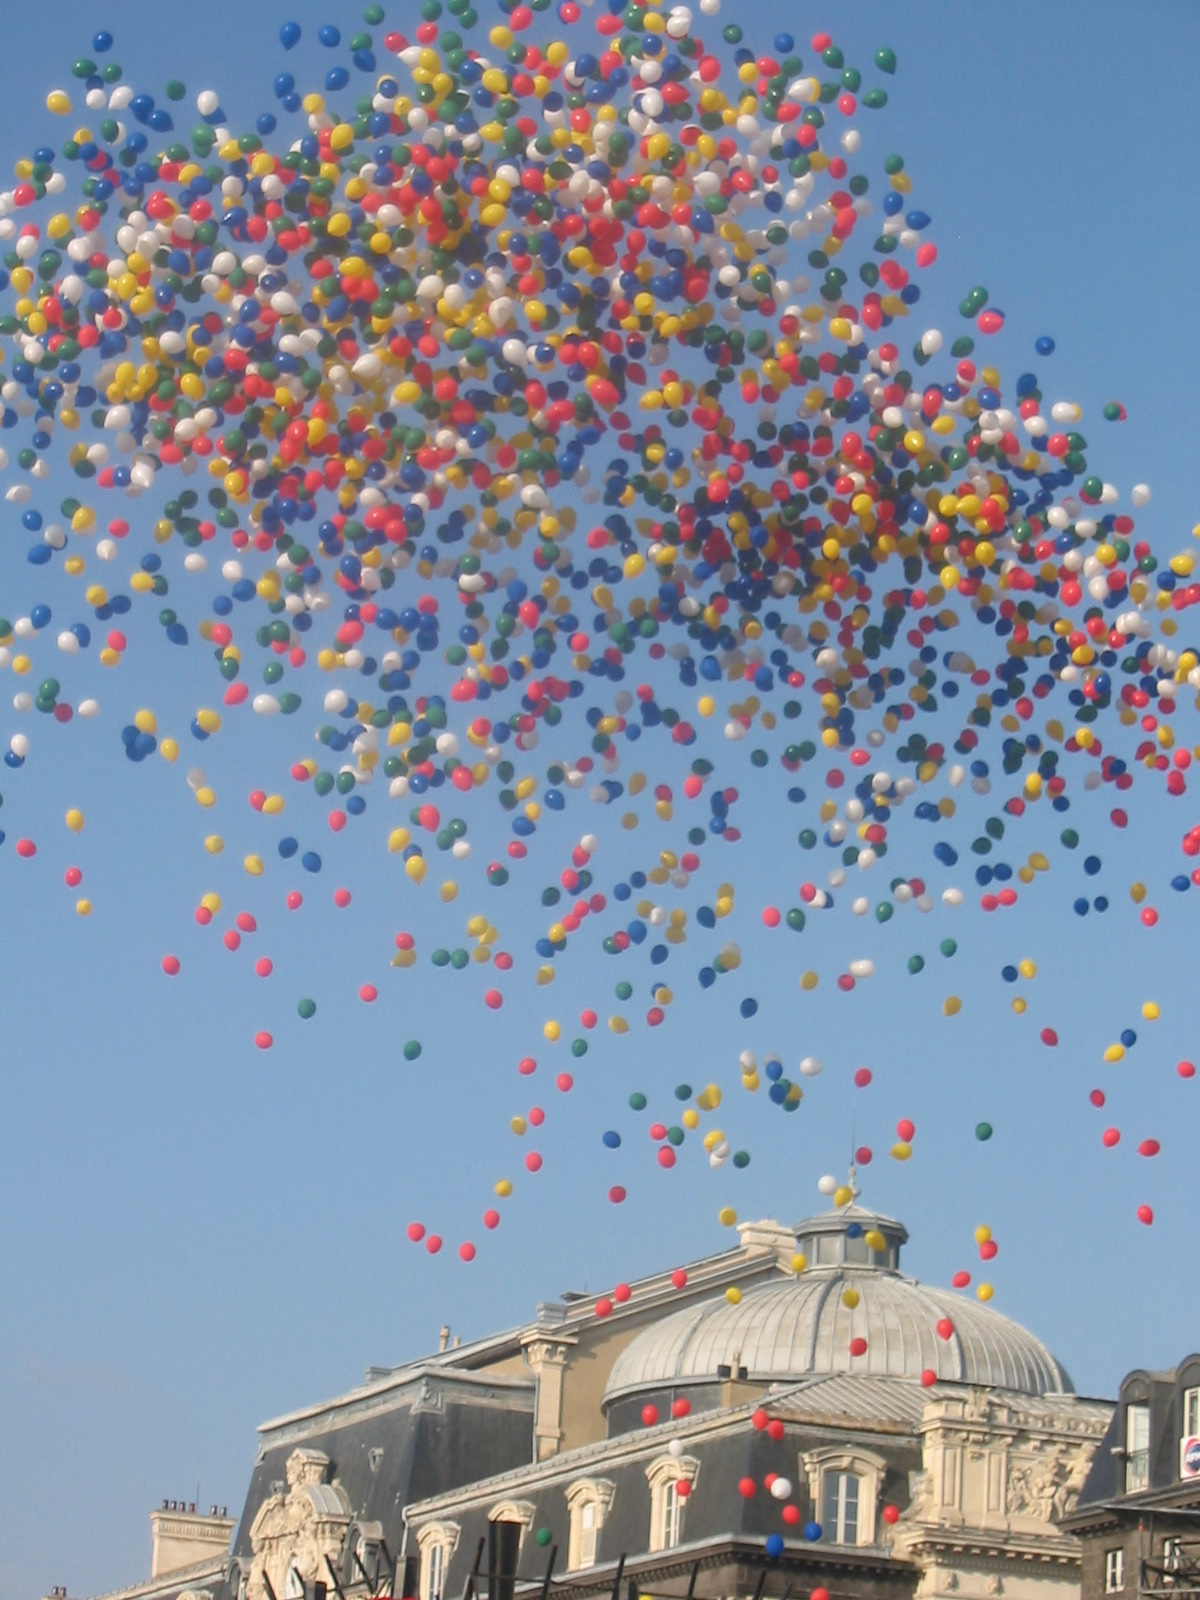 File:Ballons place de Jaude.JPG - Wikimedia Commons